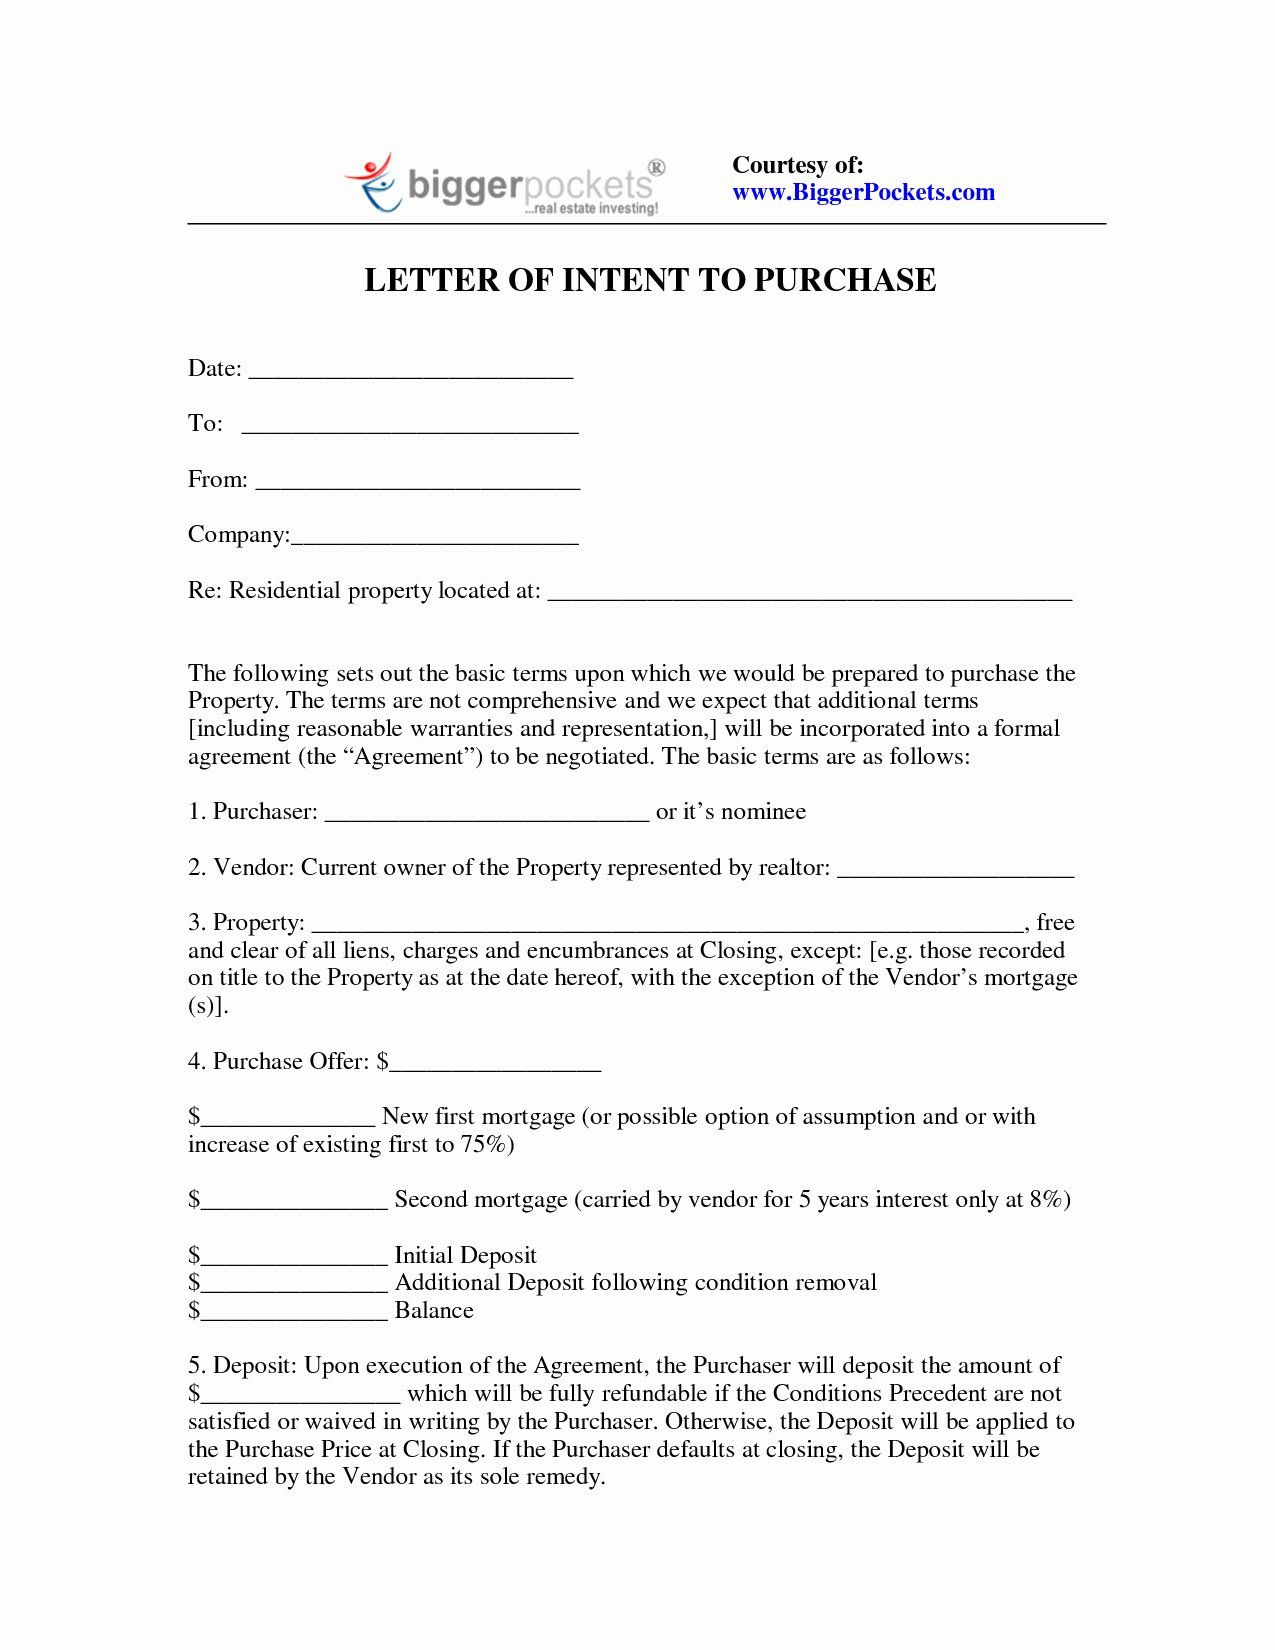 Real Estate Investment Proposal Template In 2020 Letter Of